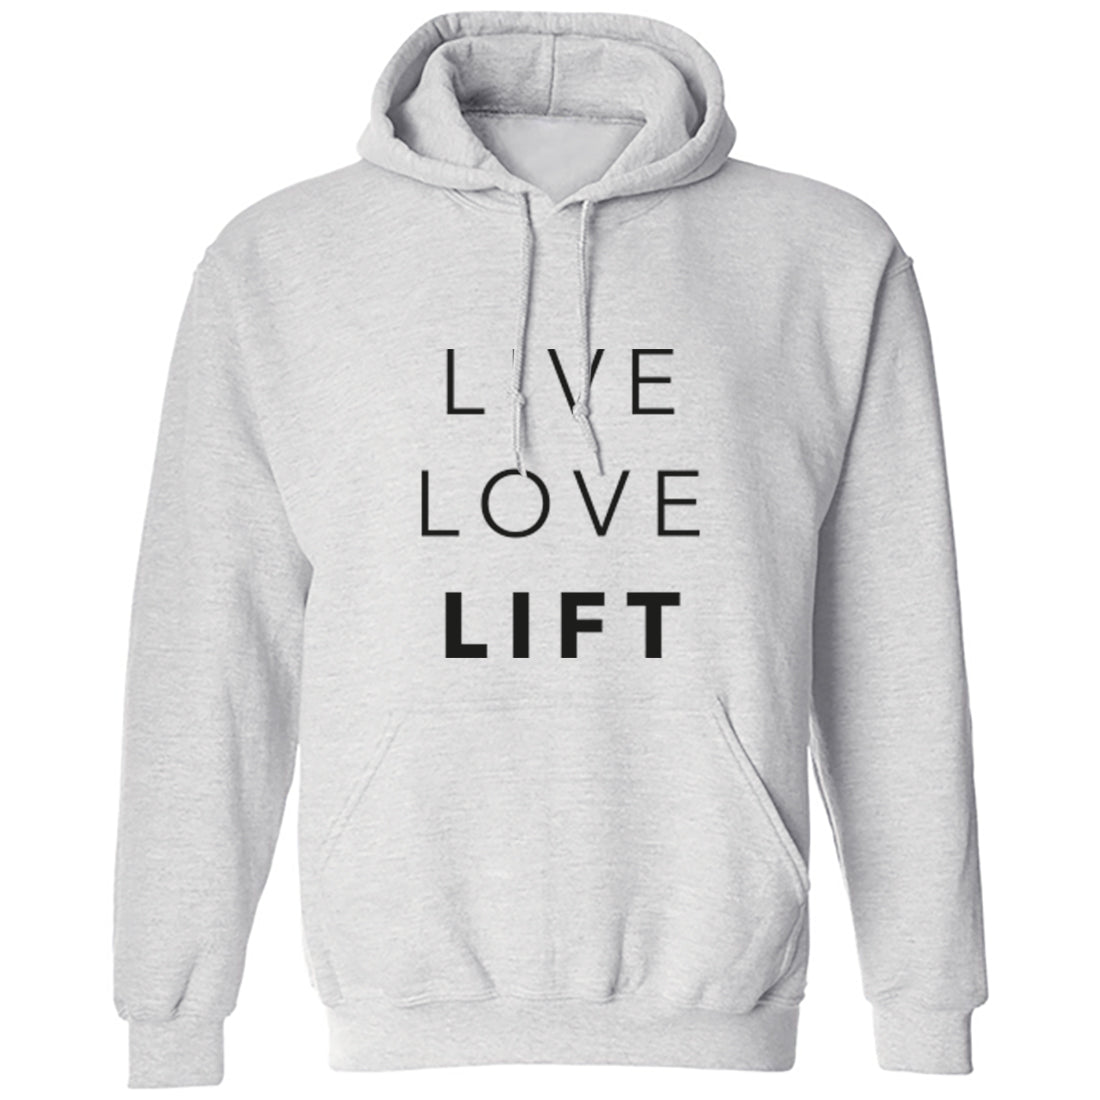 Live Love Lift Unisex Hoodie K1446 - Illustrated Identity Ltd.